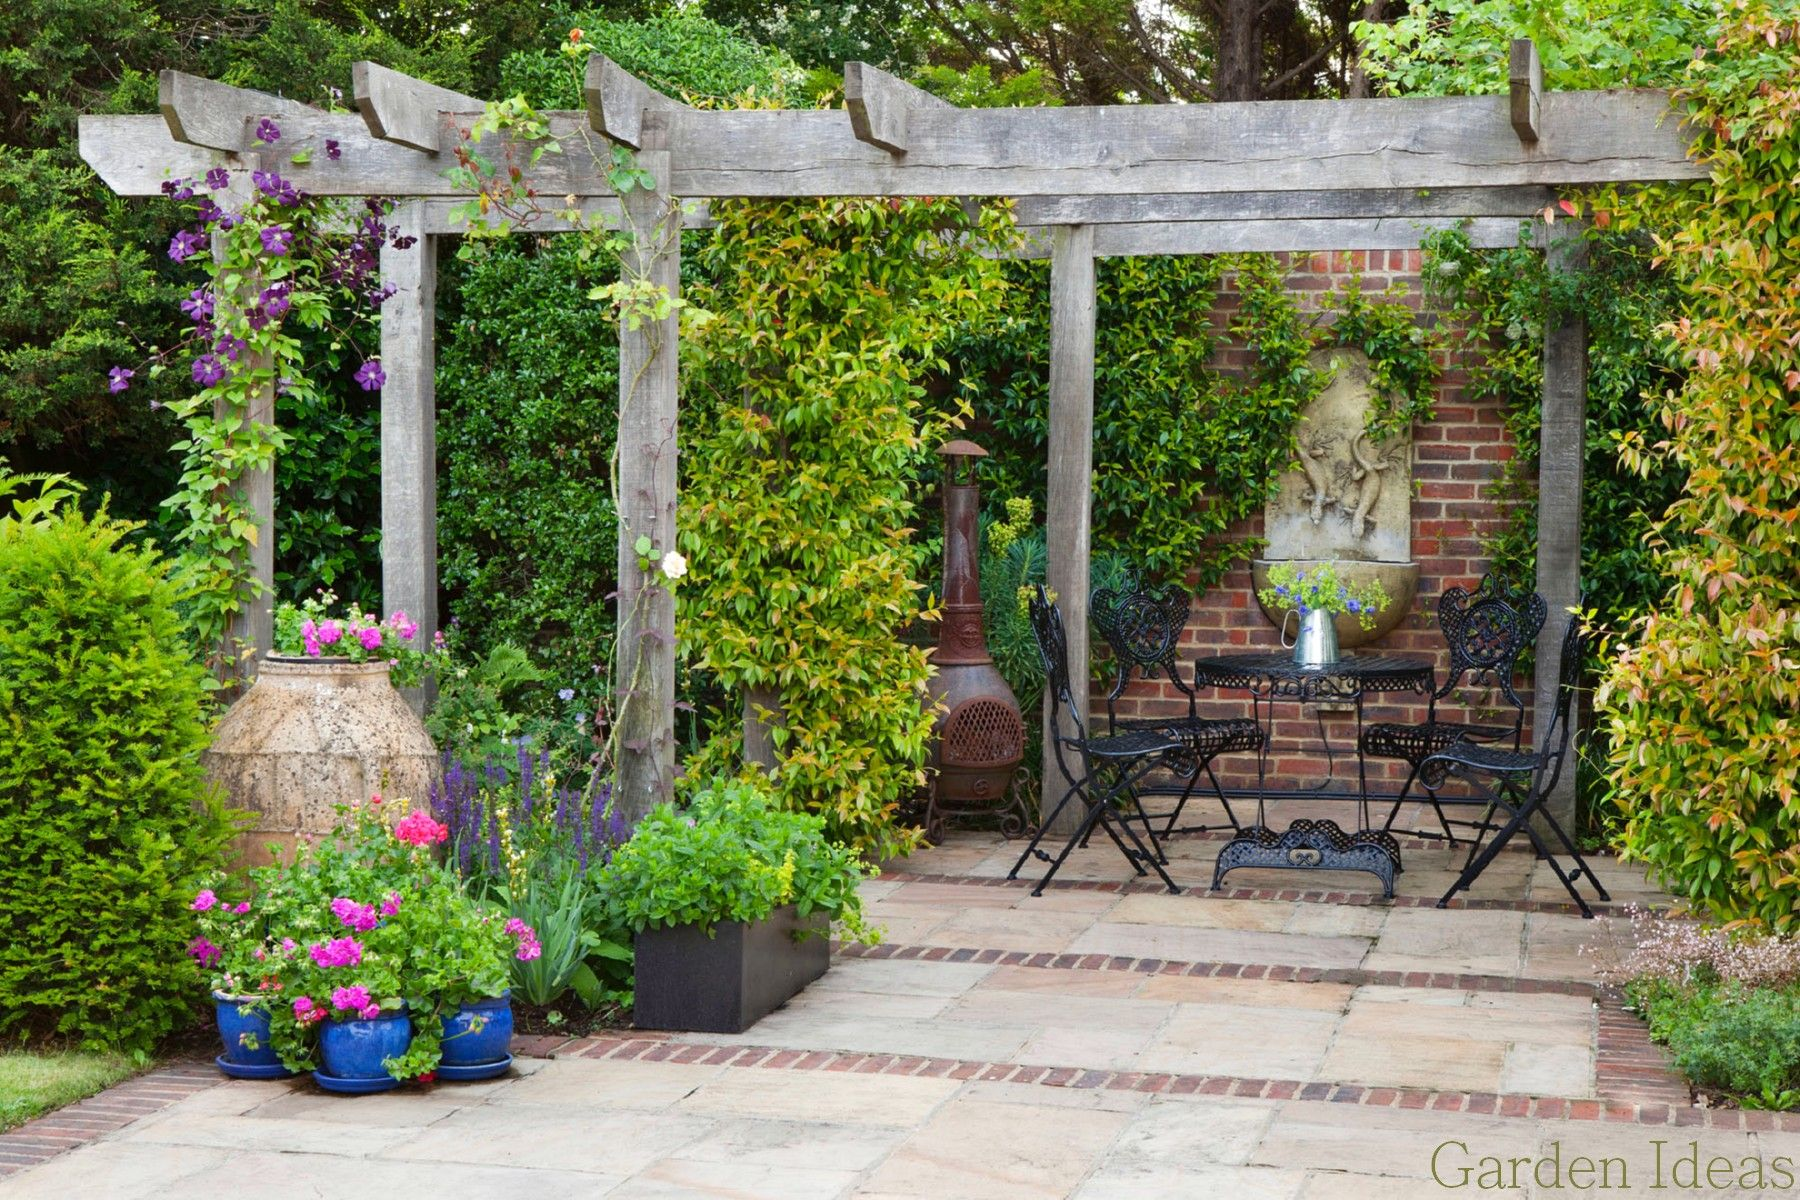 Exciting Design A Garden Photo Container Gardens Inspiring Design Ideas Front Yard Landscaping Plants Roses New